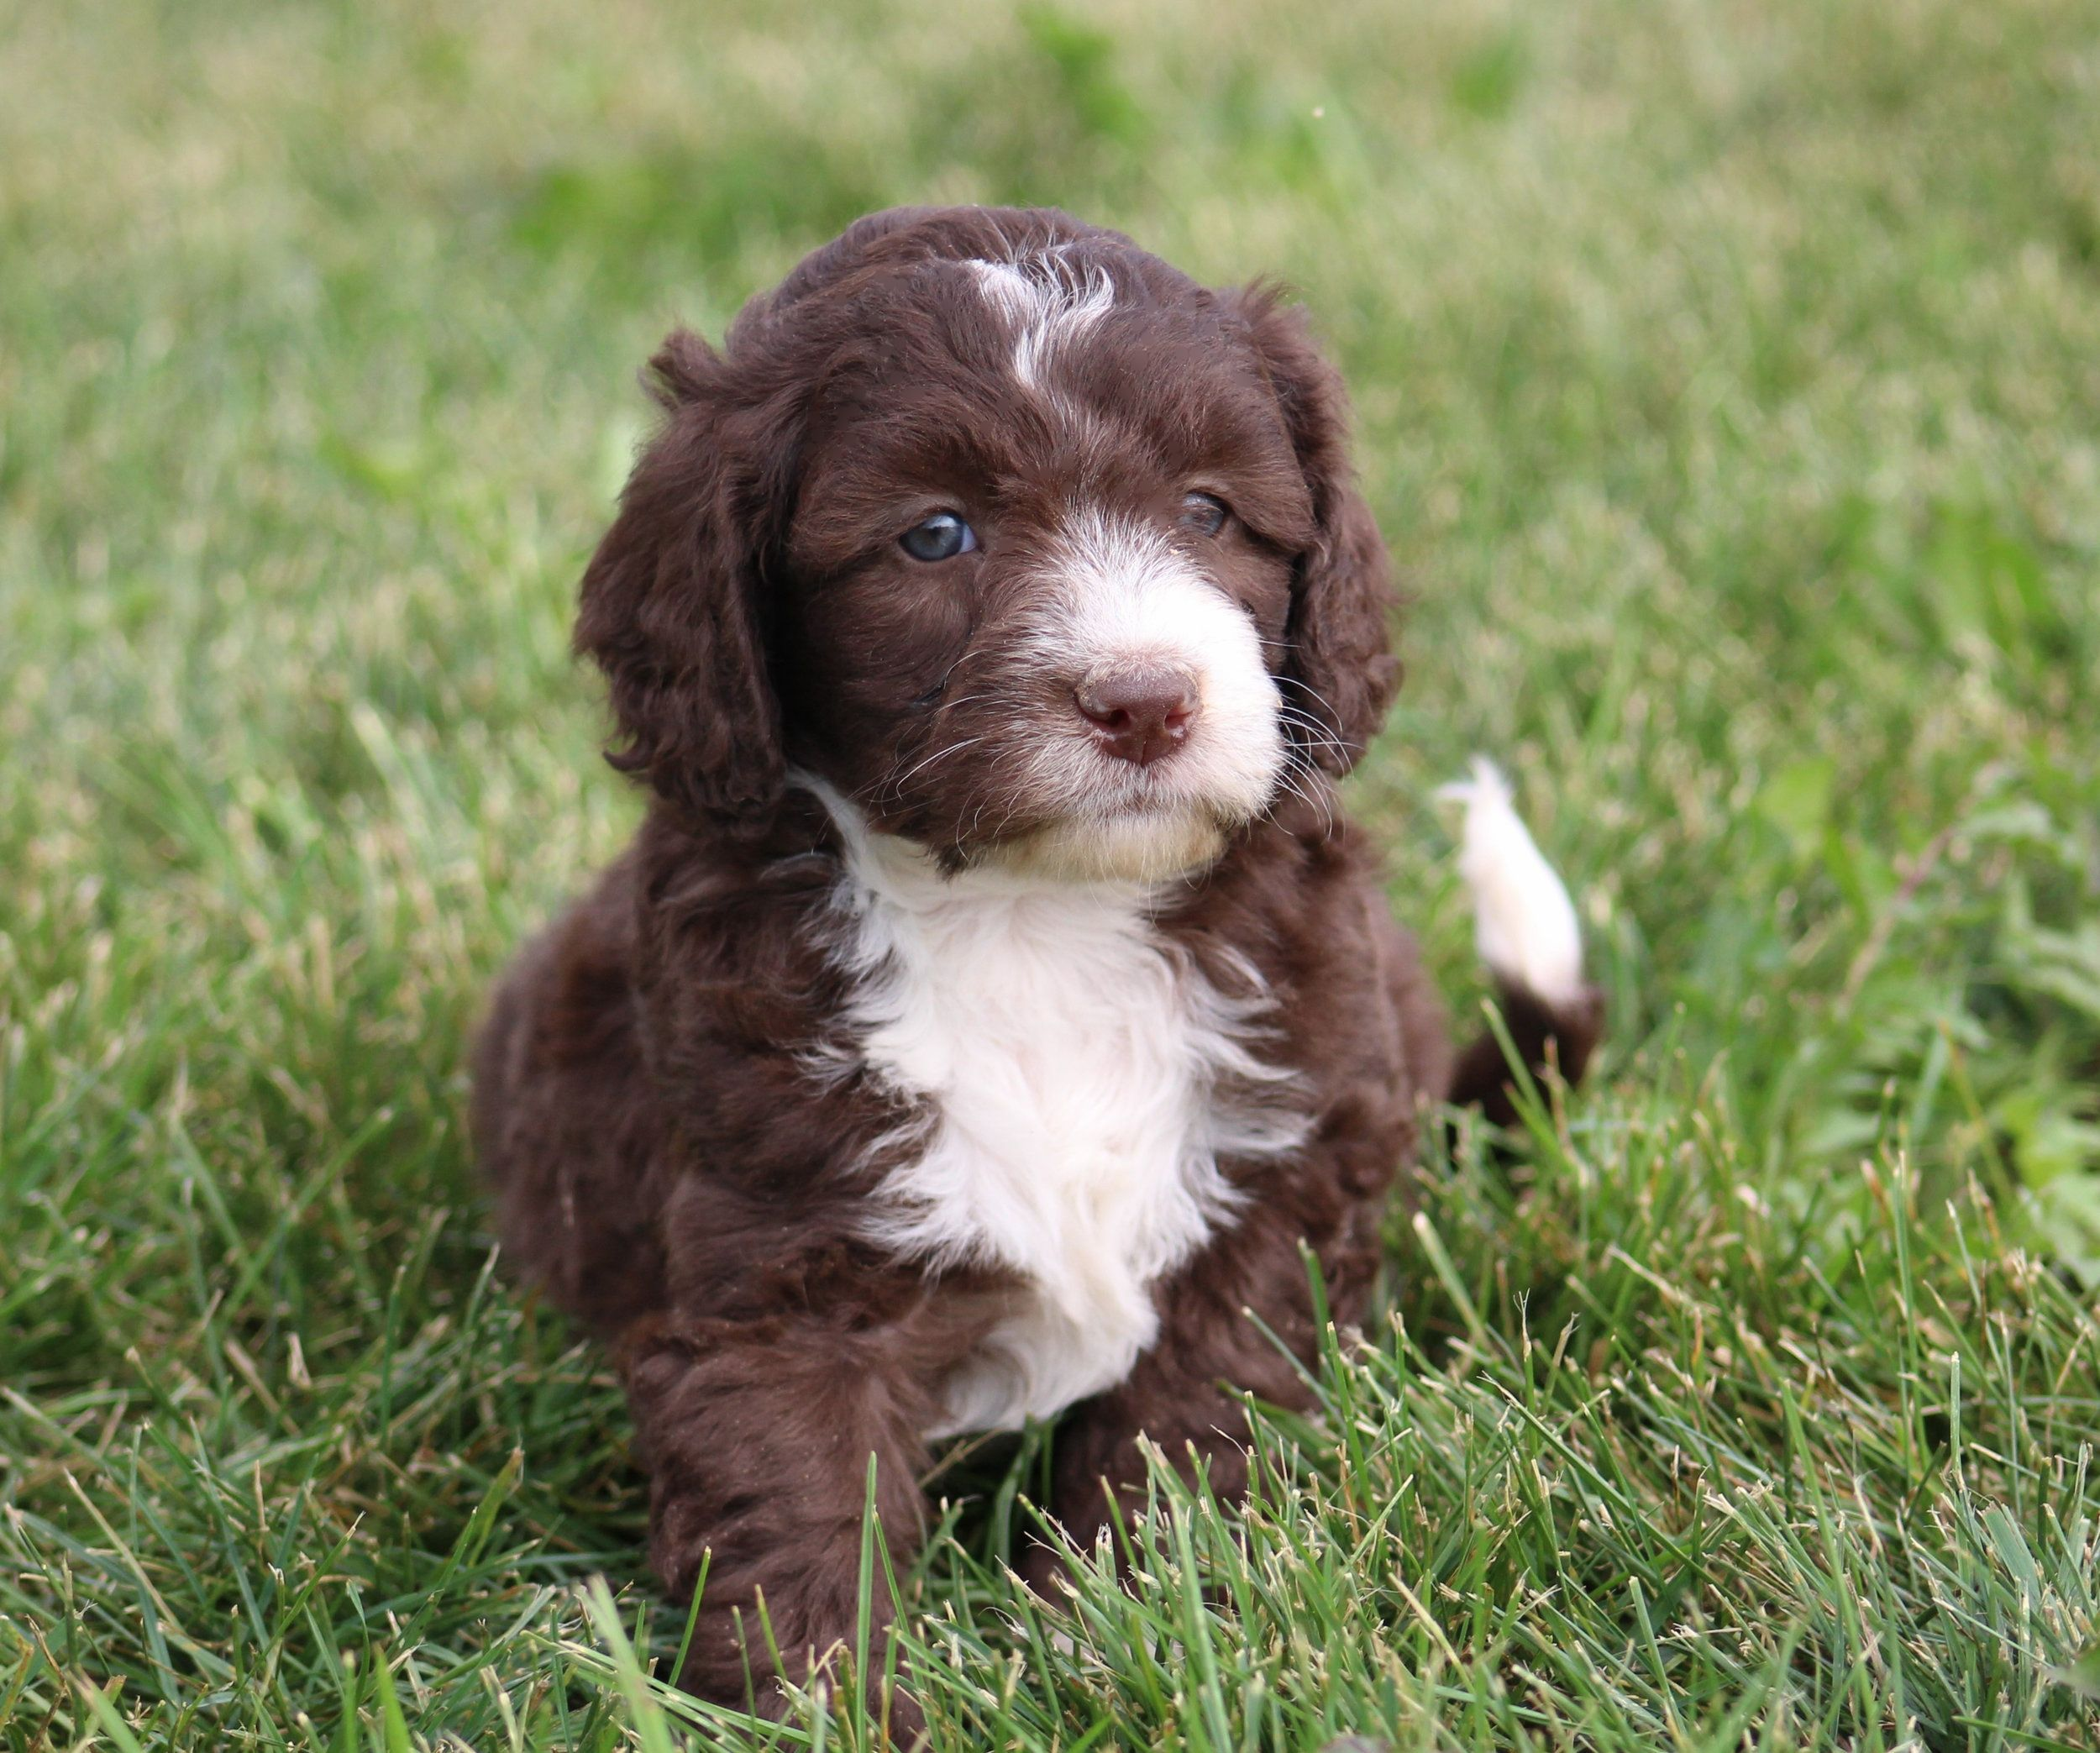 Crockett Doodles Family Raised Doodle Puppies For Sale Crockett Doodles Doodle Puppy Labradoodle